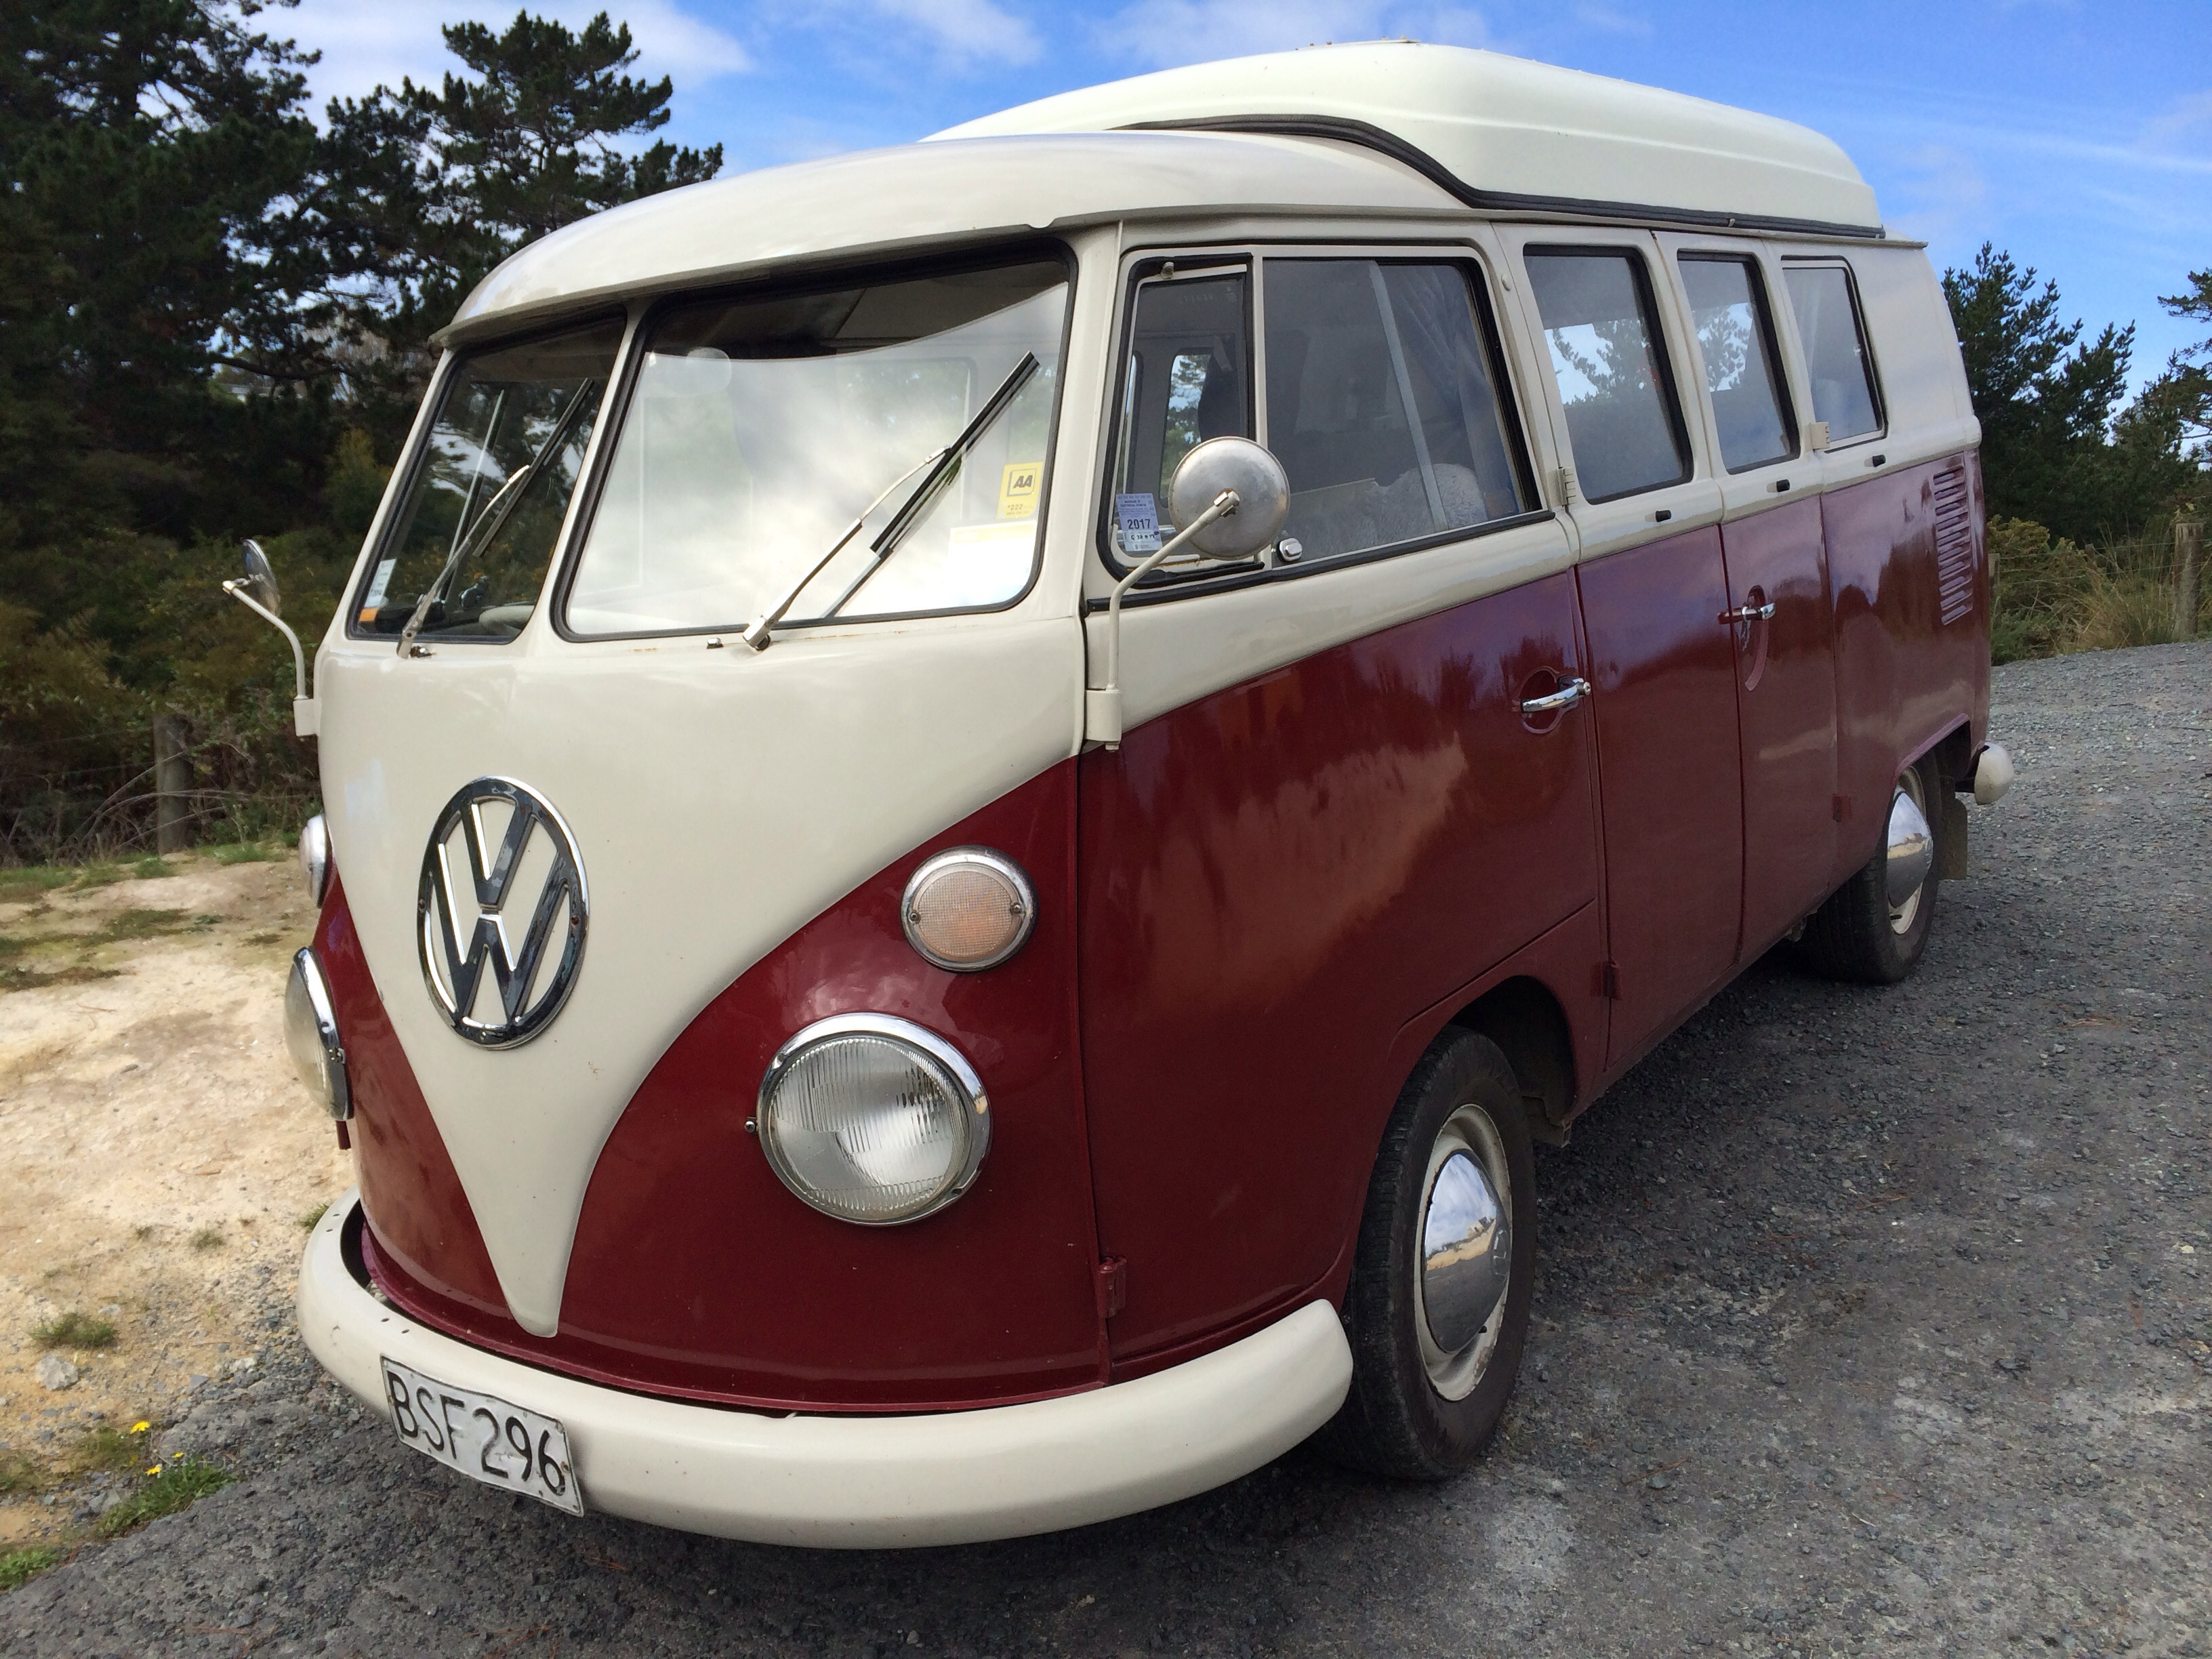 Pax want's a split screen kombi